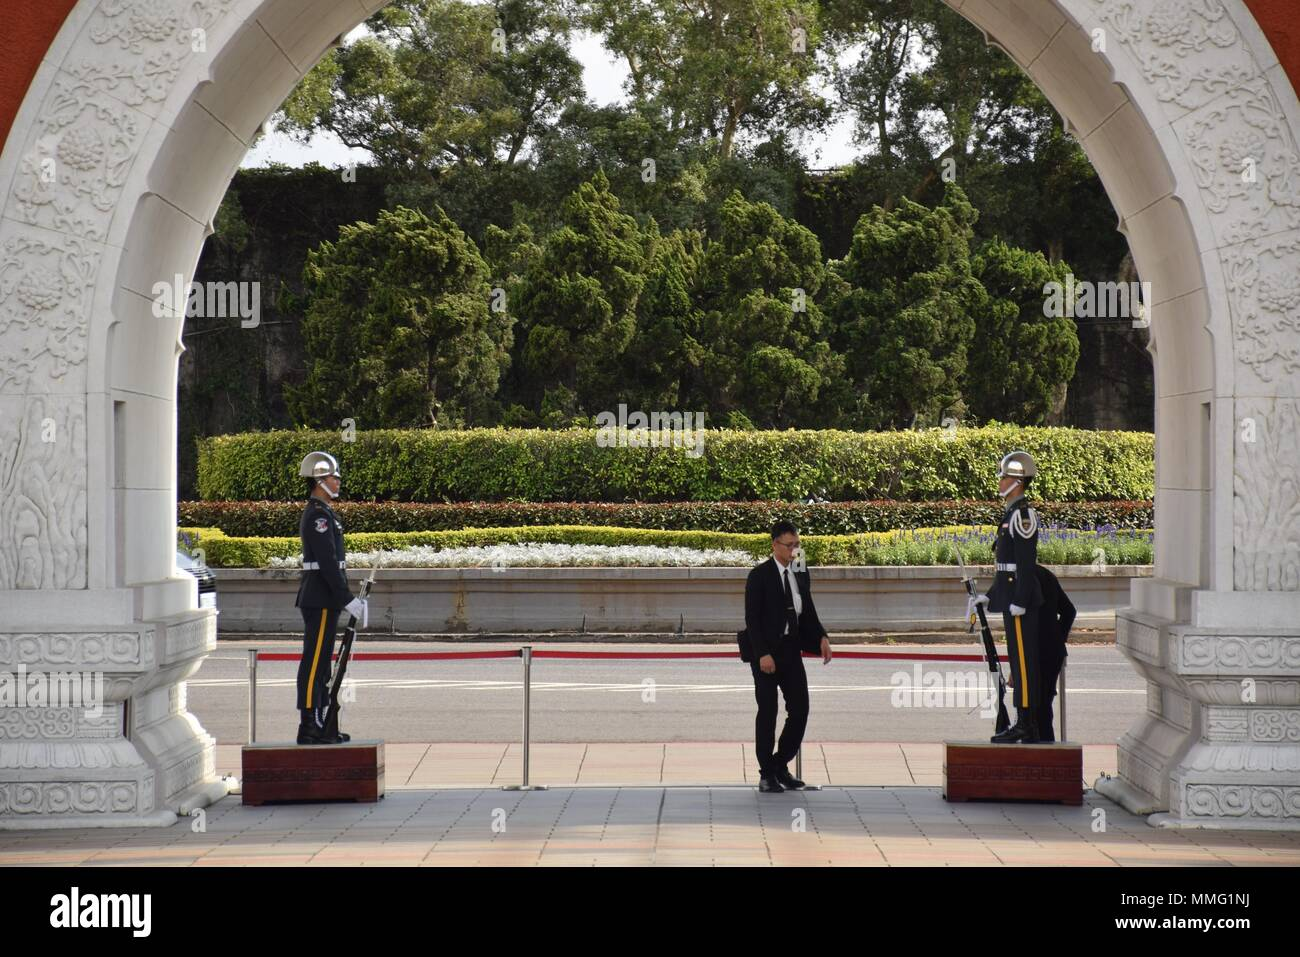 Military officers at the entrance of the National Revolutionary Martyrs' Shrine in Taipei, Taiwan Stock Photo